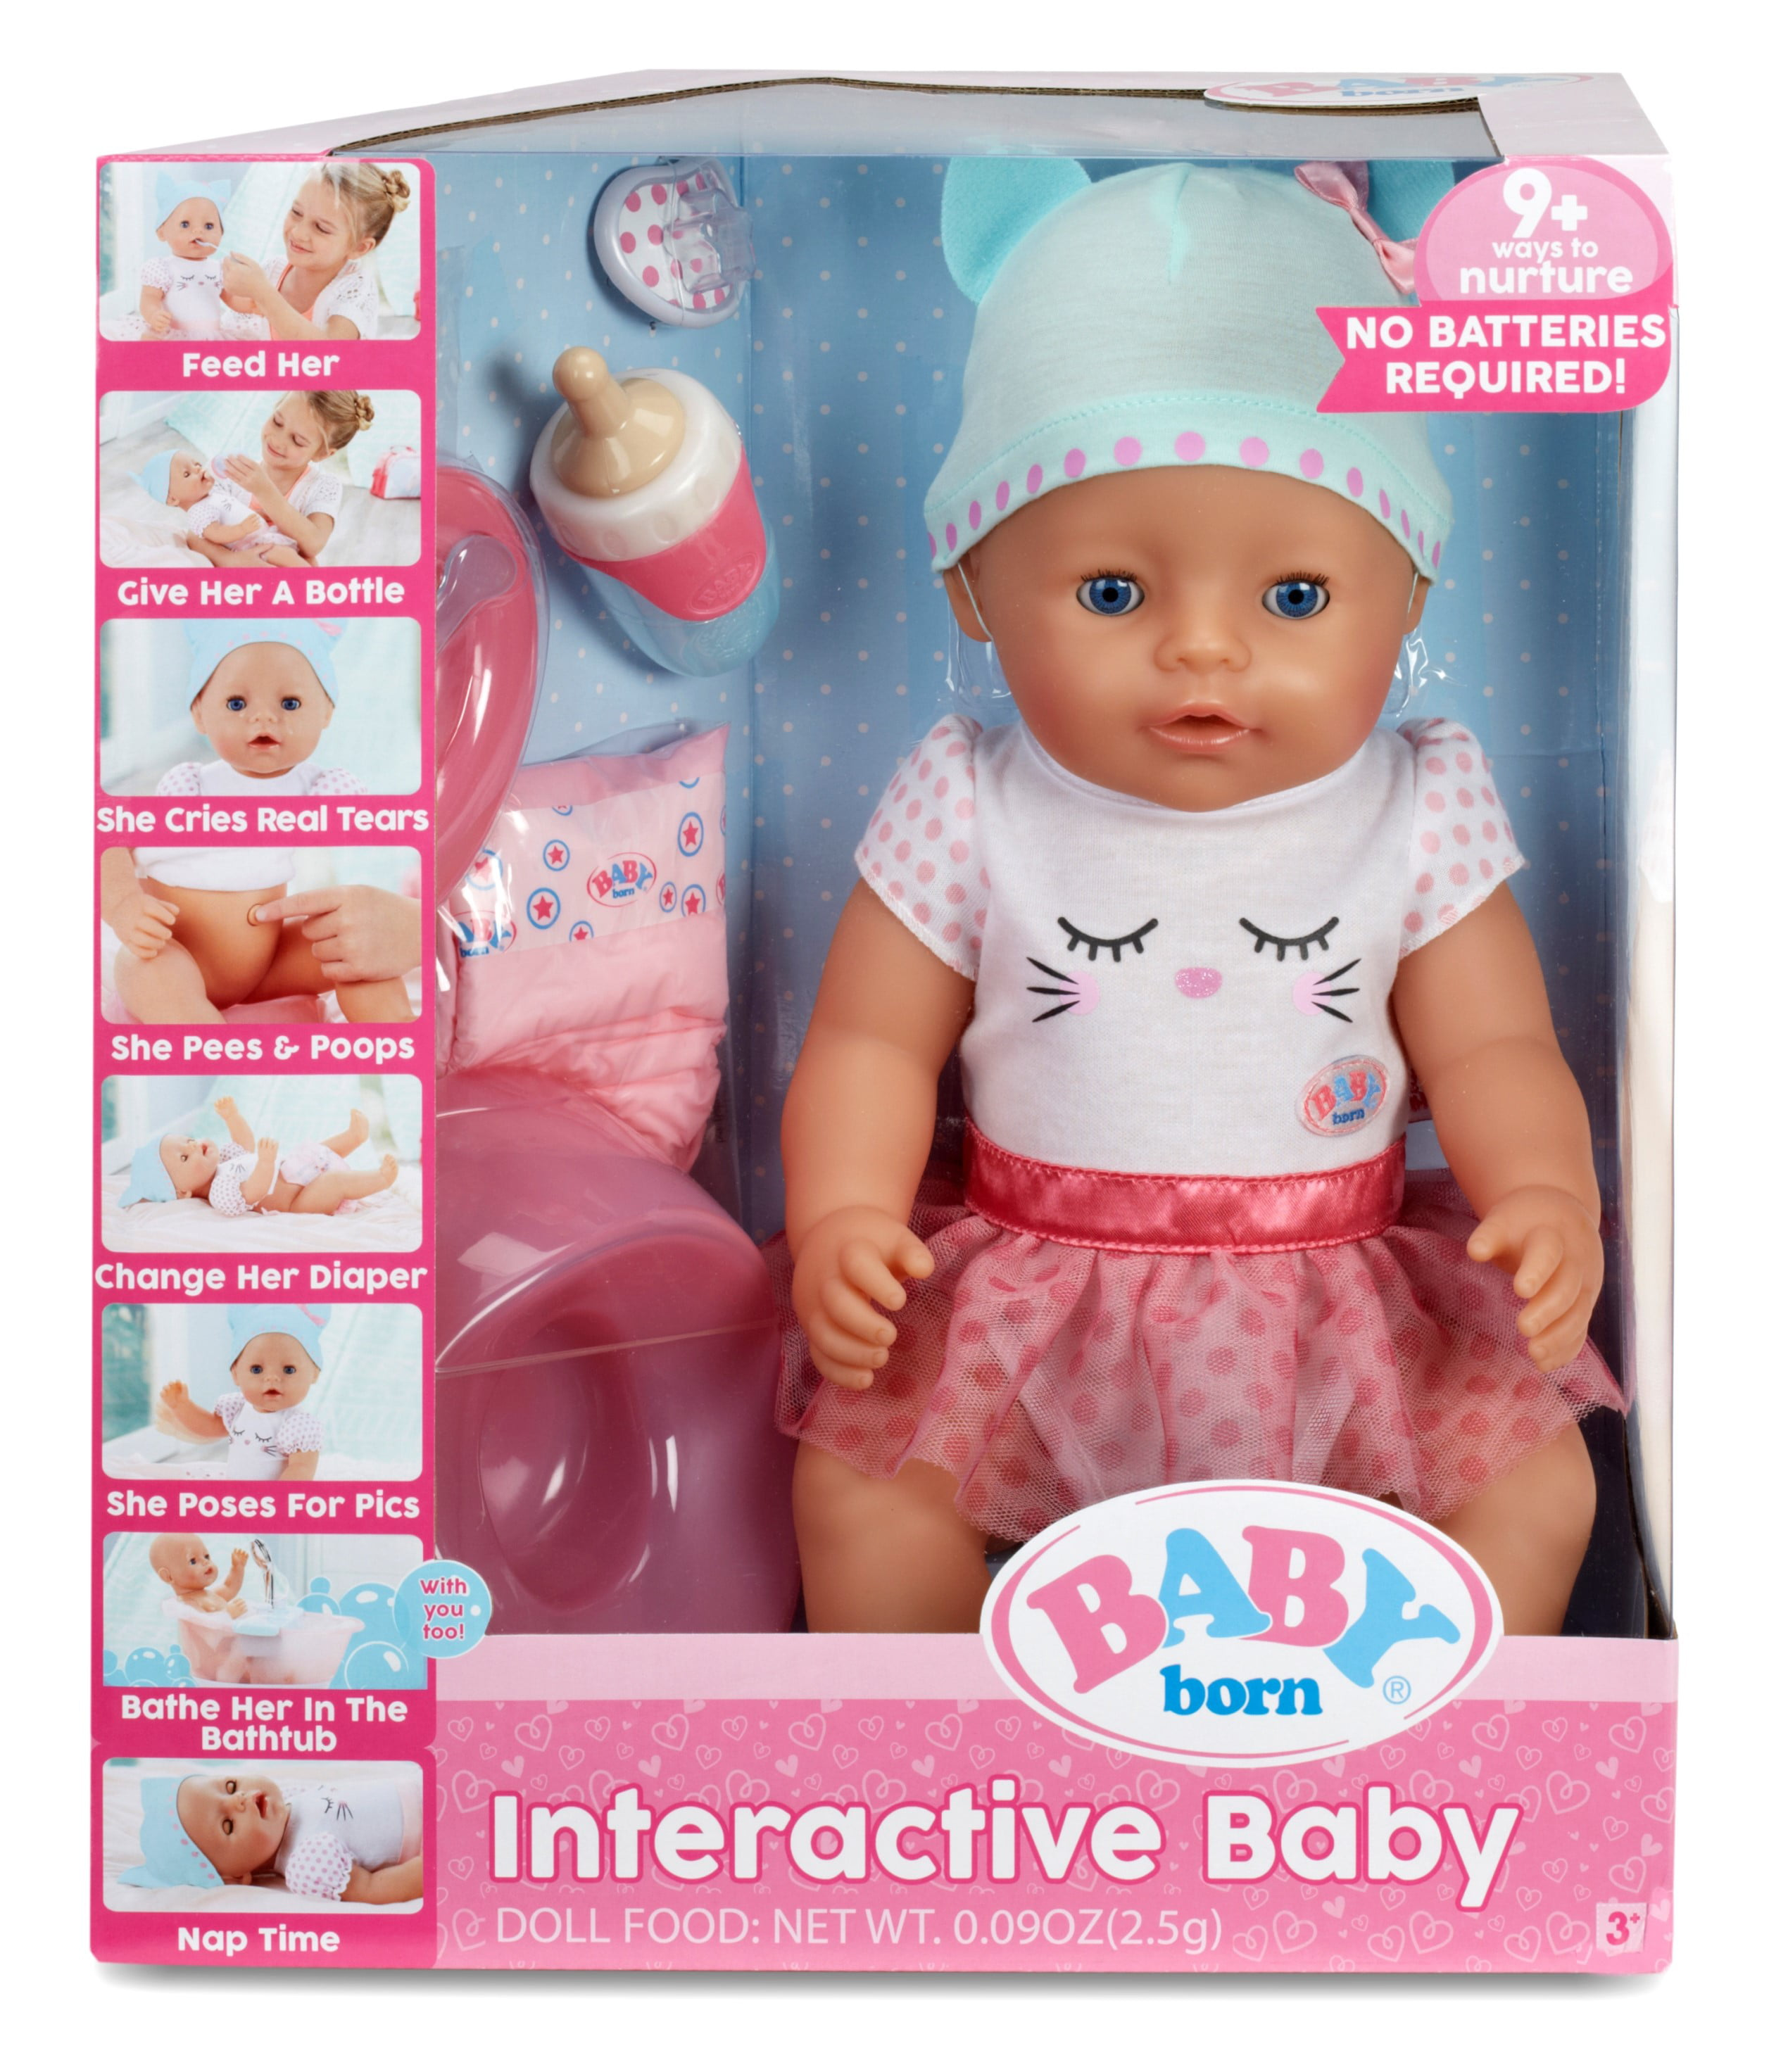 BABY born Interactive Doll Blue Eyes - Walmart.com